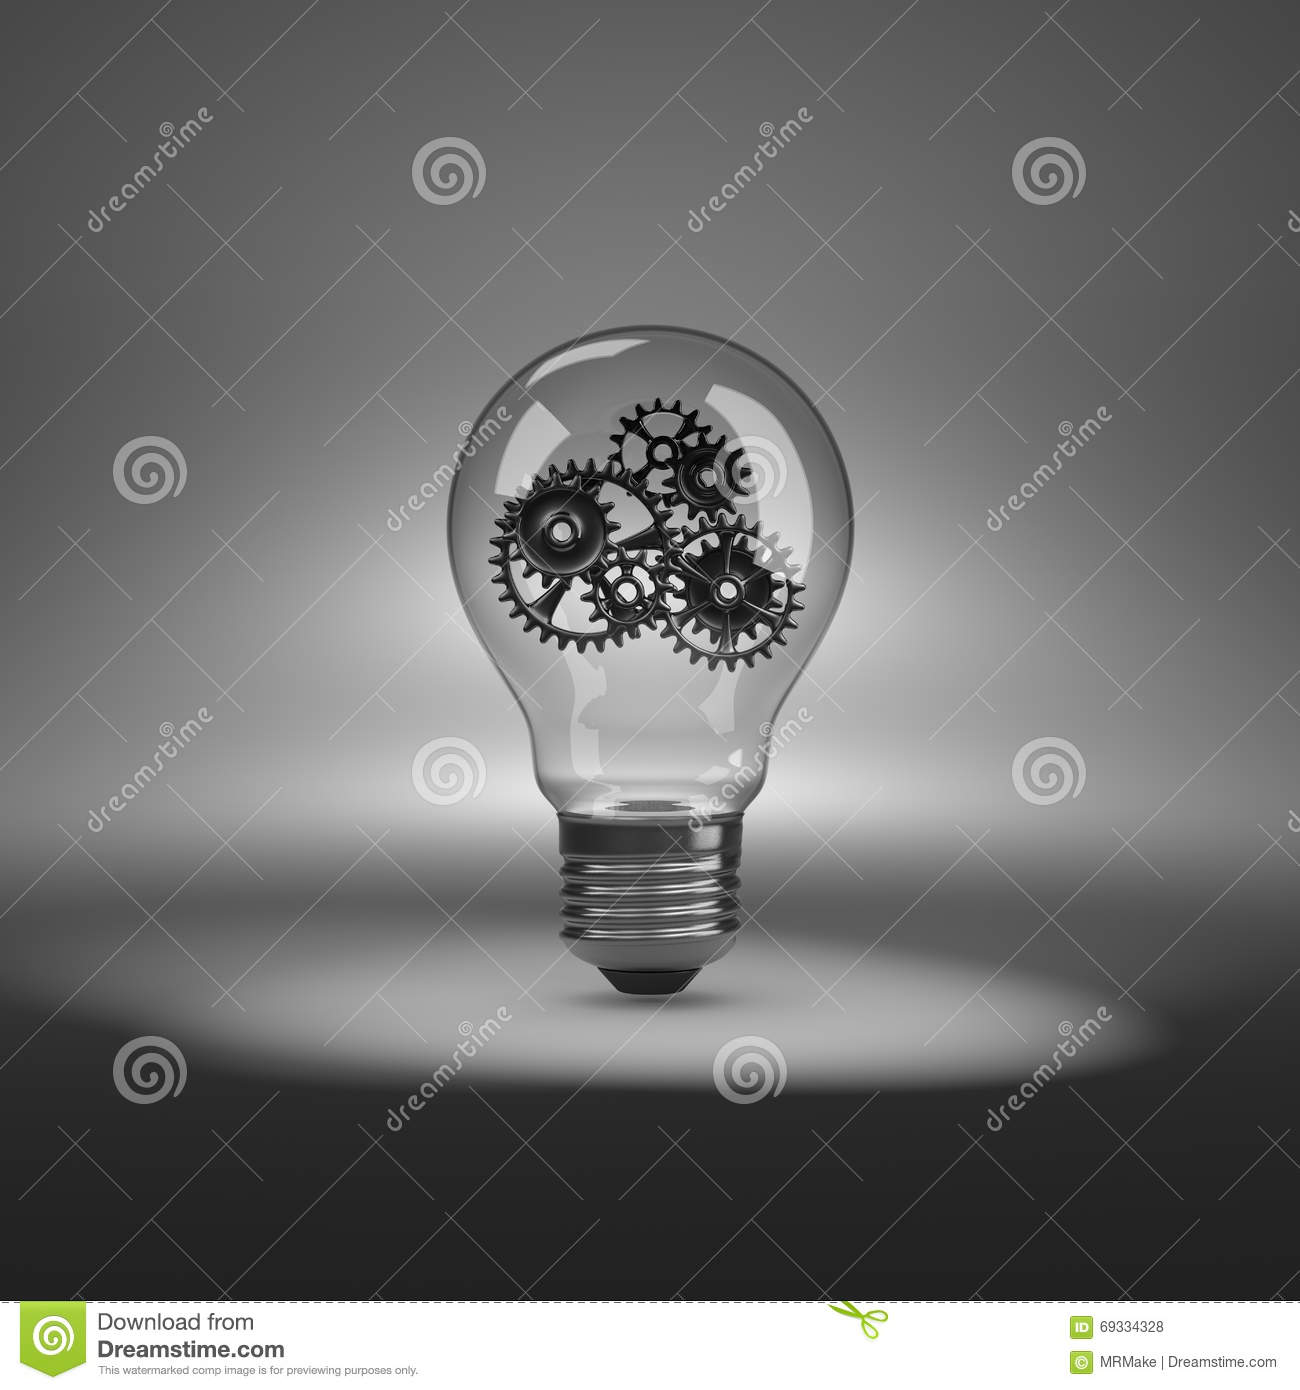 Light Bulb With Gears Inside Stock Illustration - Illustration of ...